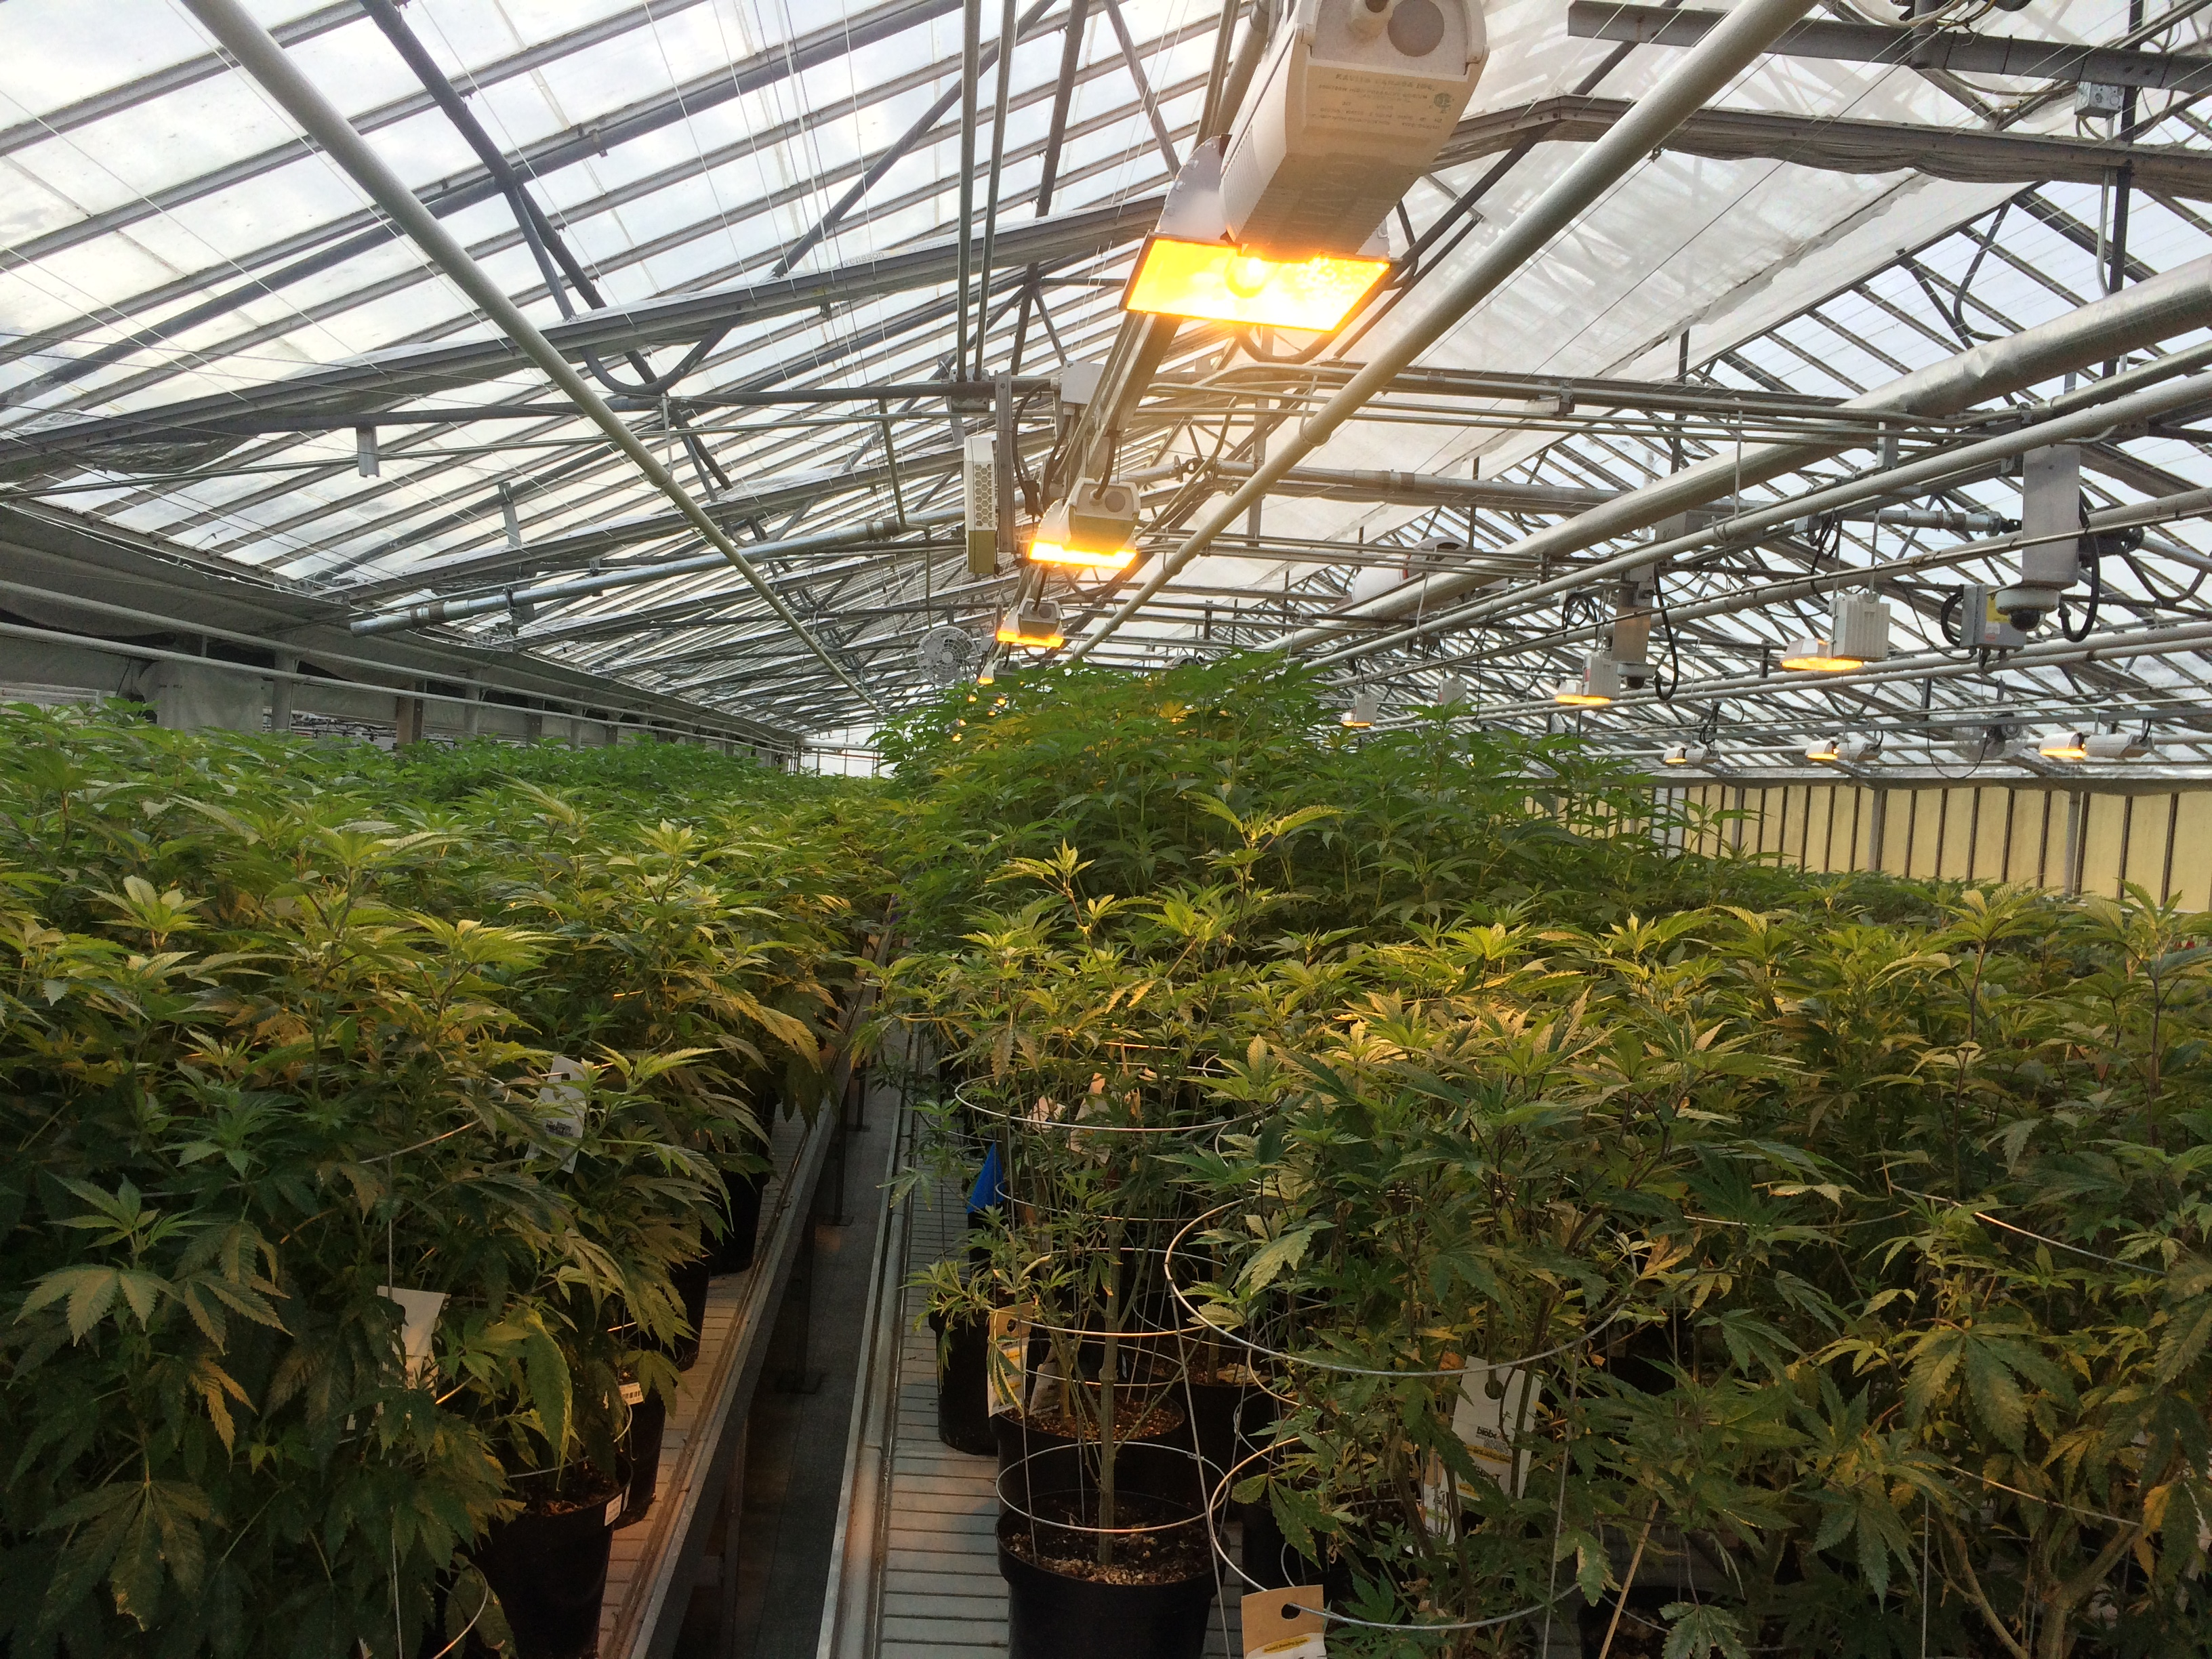 Medical marijuana plants seen at Aphria's Leamington greenhouses on February 19, 2016. (Photo by Ricardo Veneza)